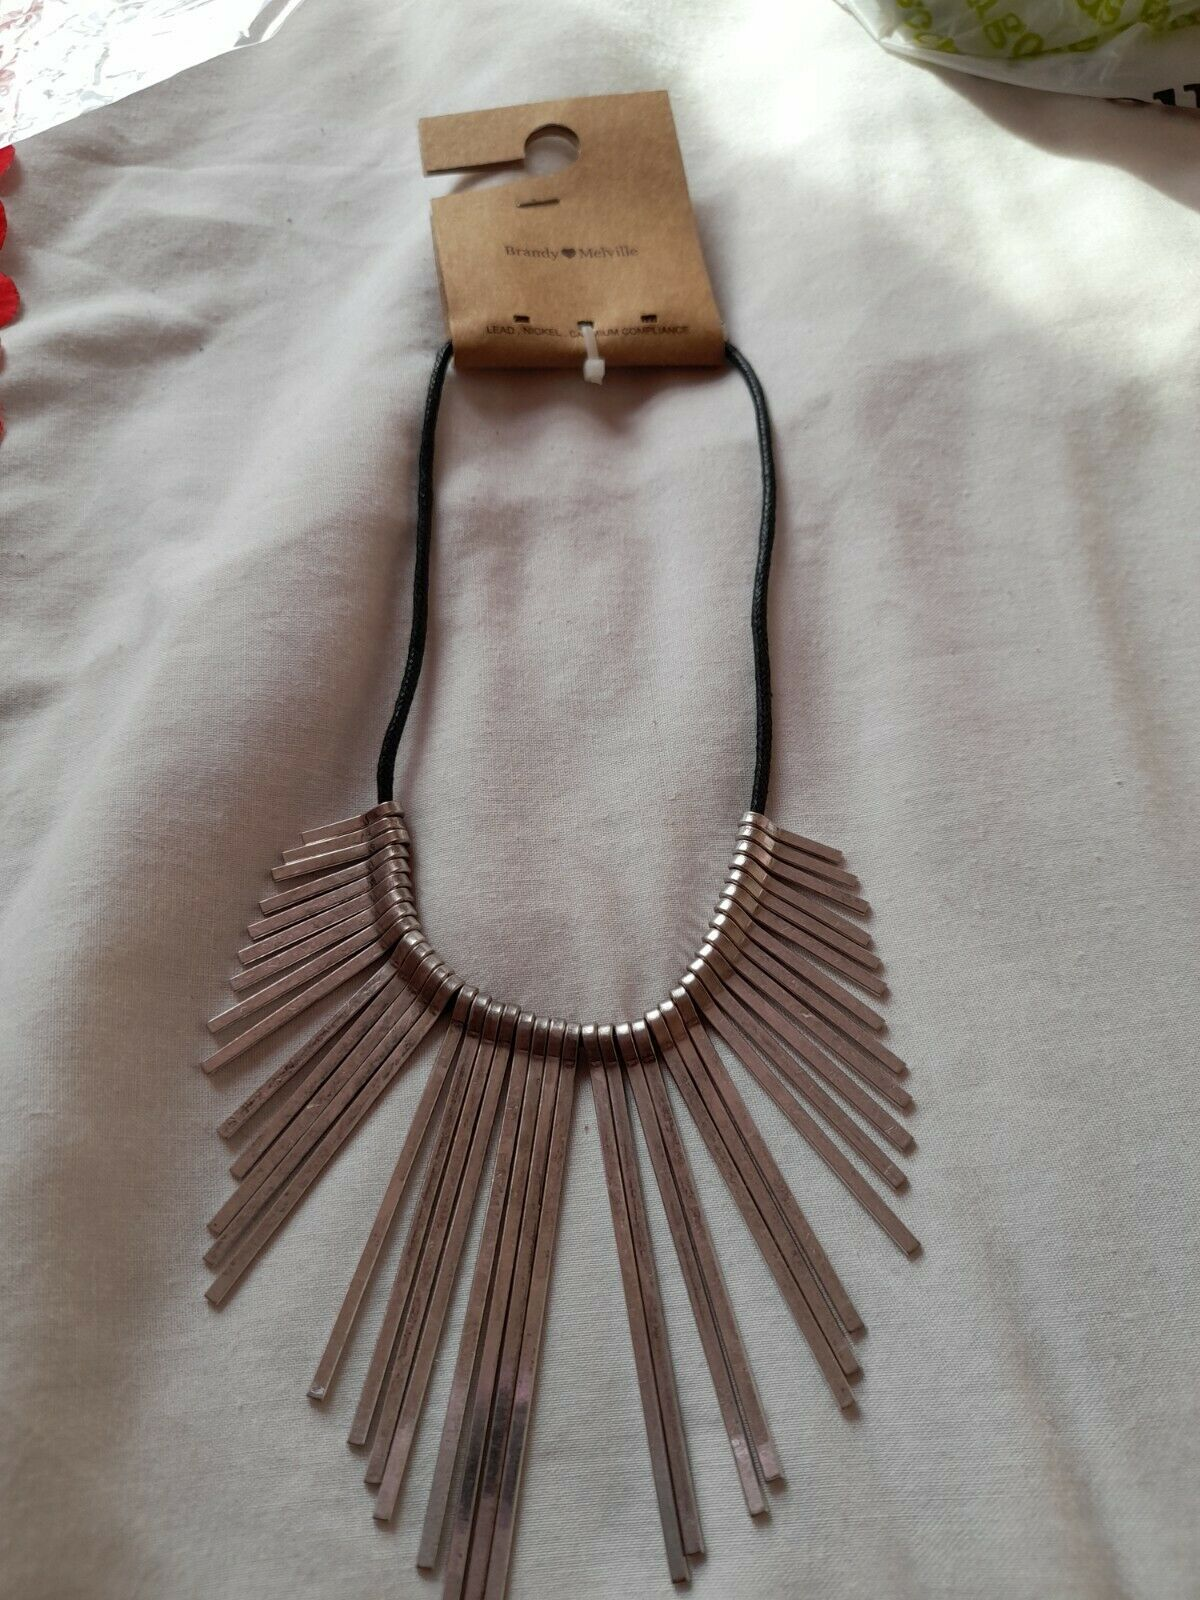 Brandy Melville costume necklace New In Packet